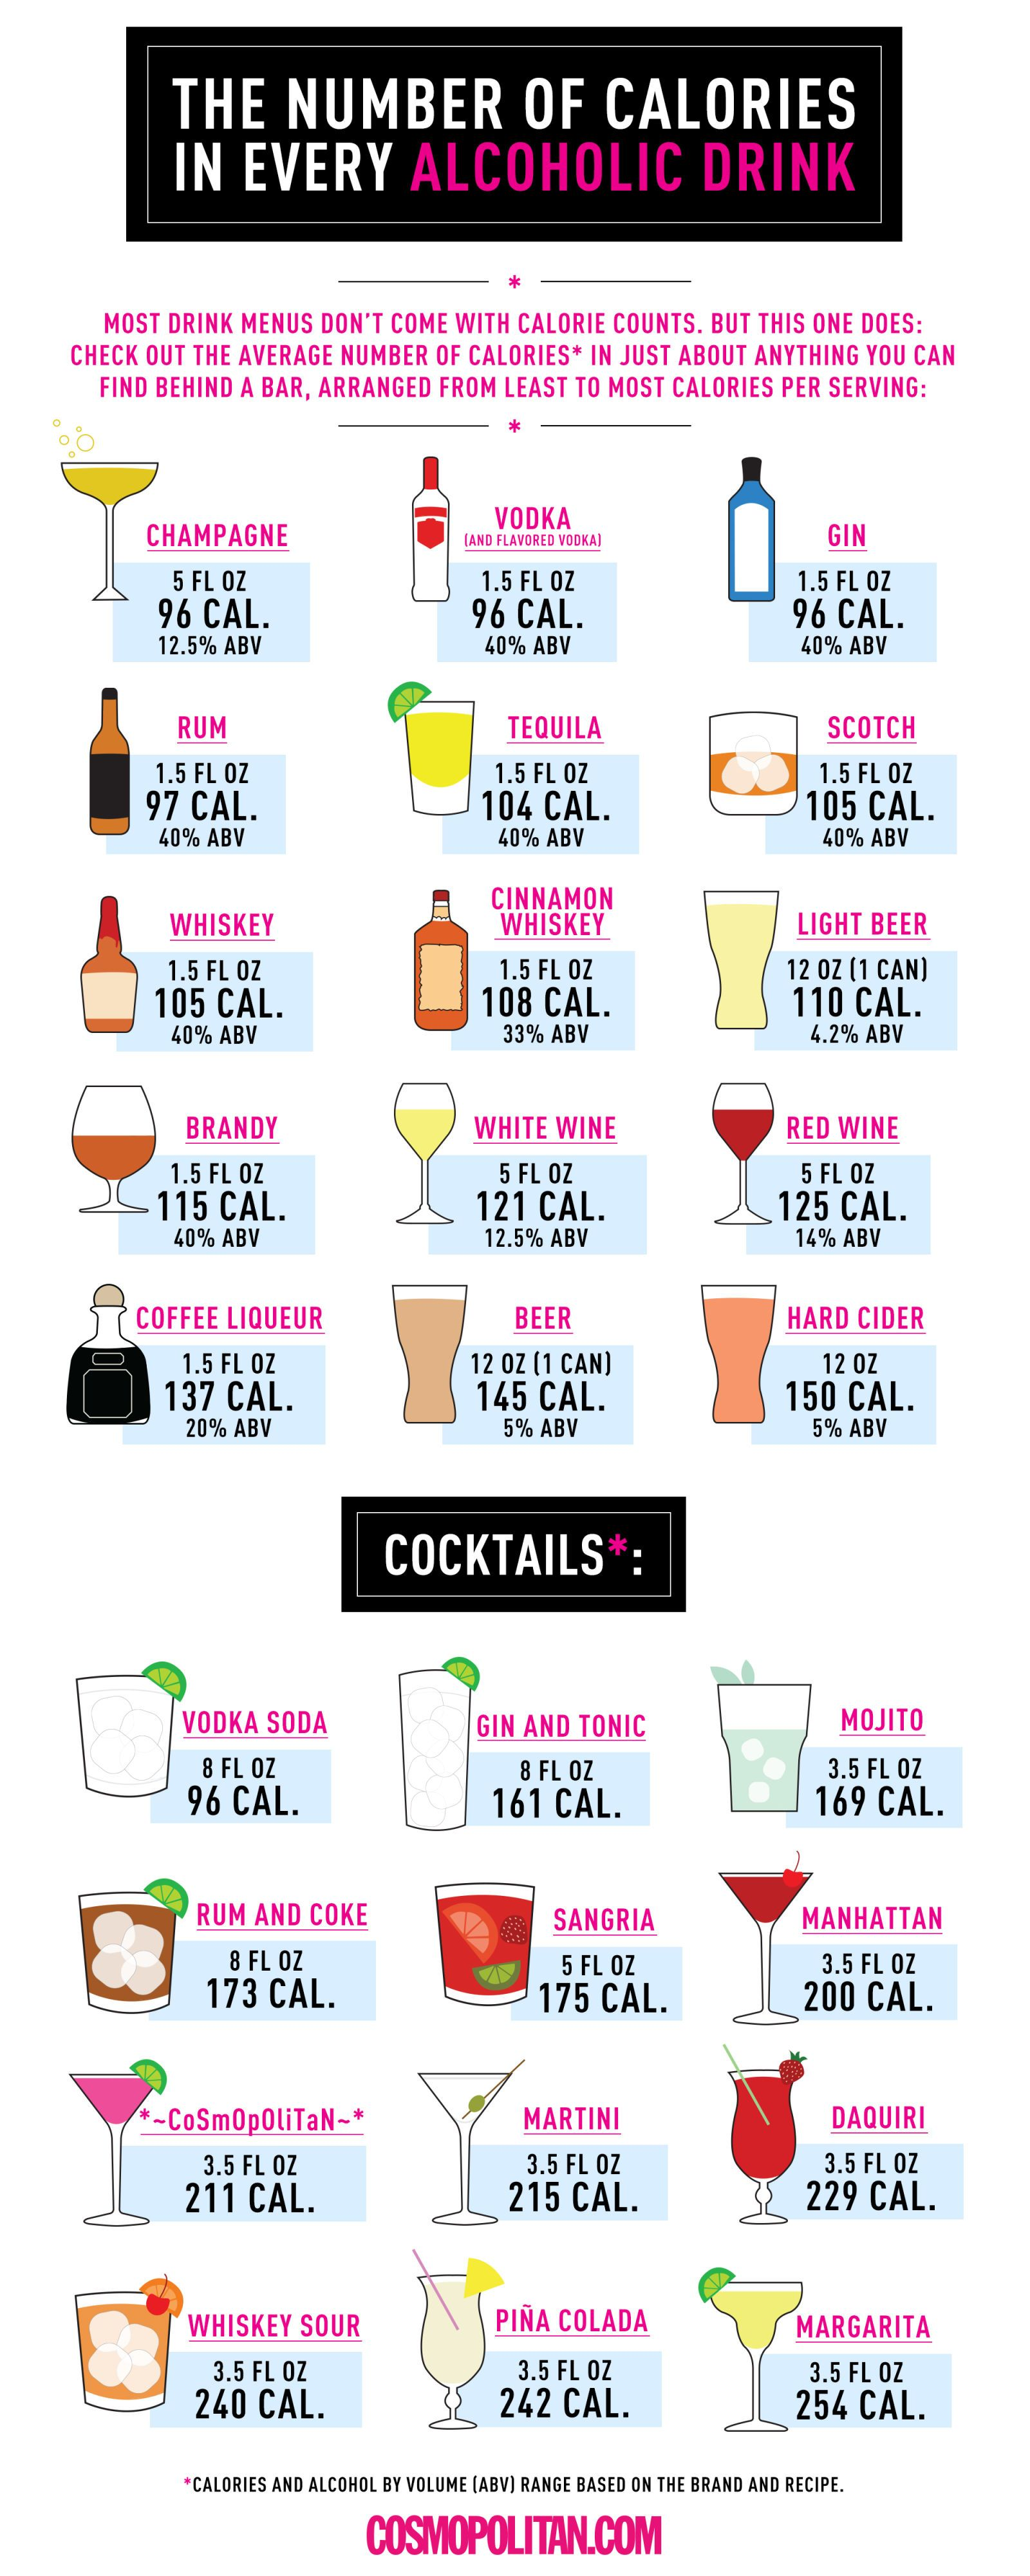 240 Libras A Kilos This Incredibly Important Chart Shows The Number Of Calories In